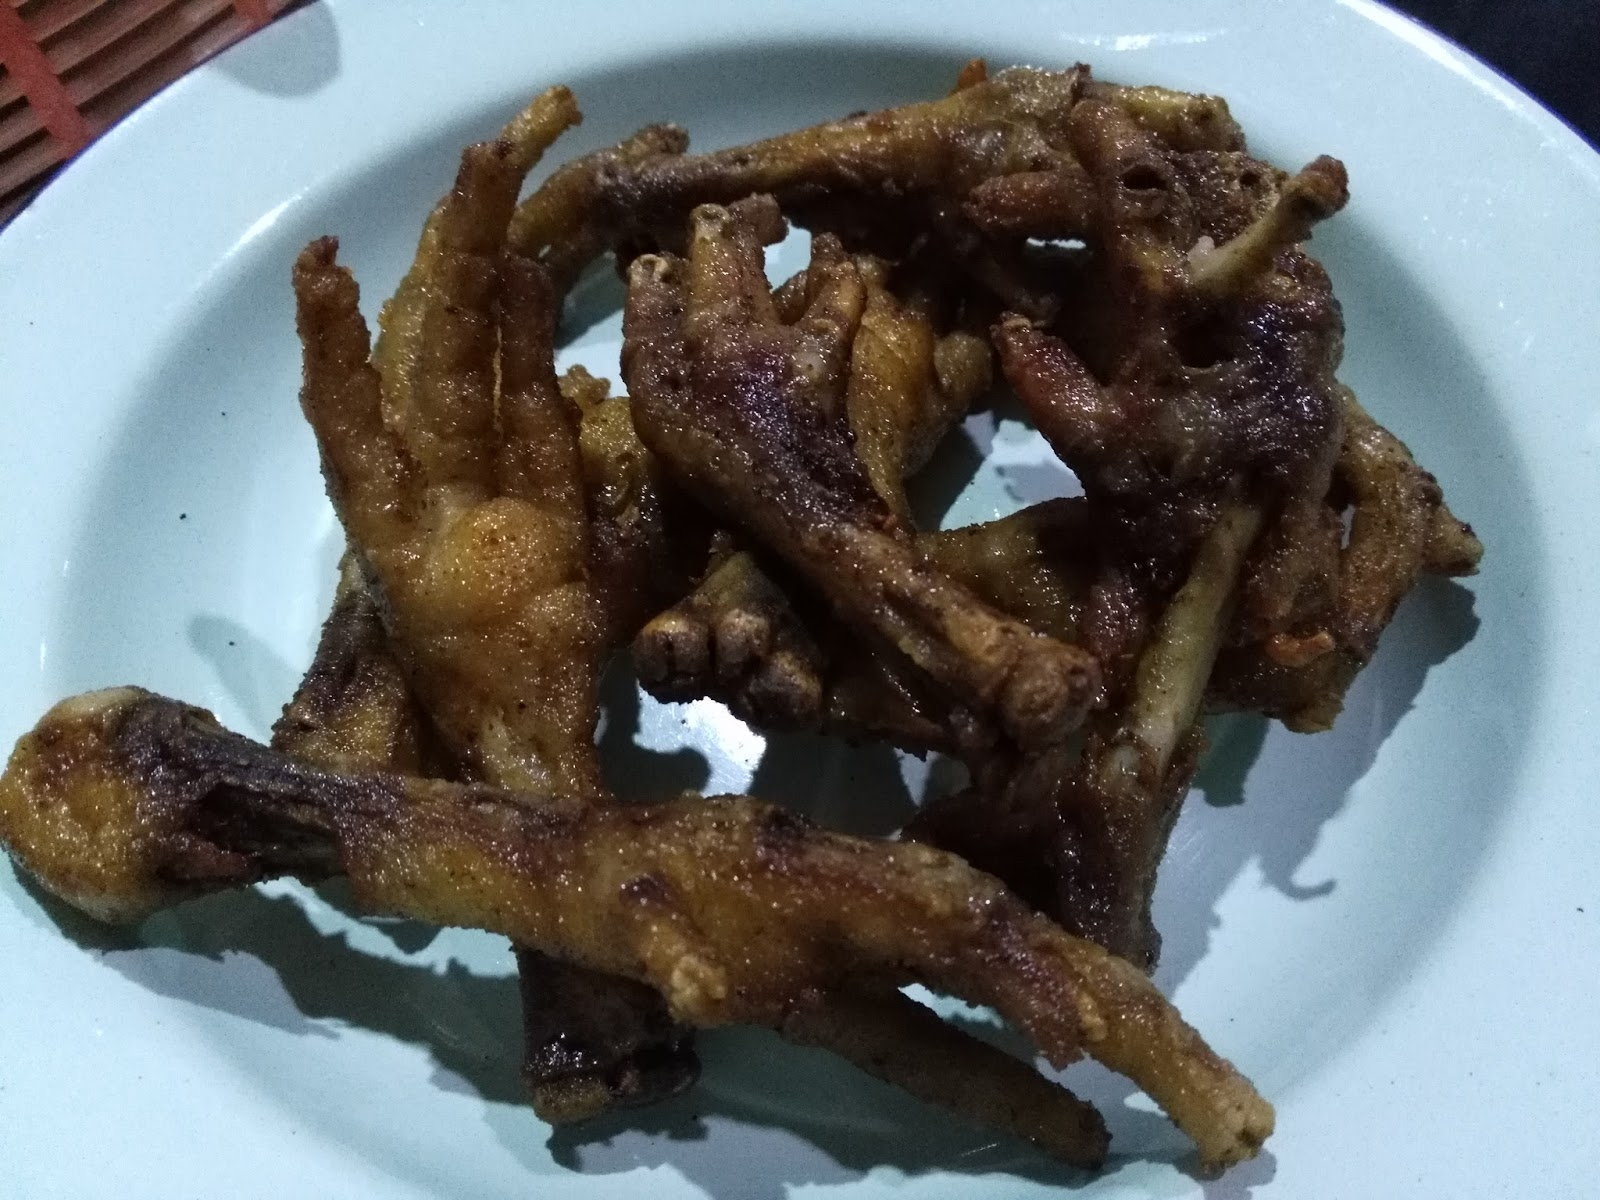 ... fried kangkong (water spinach). Another famous dish is the deep-fried